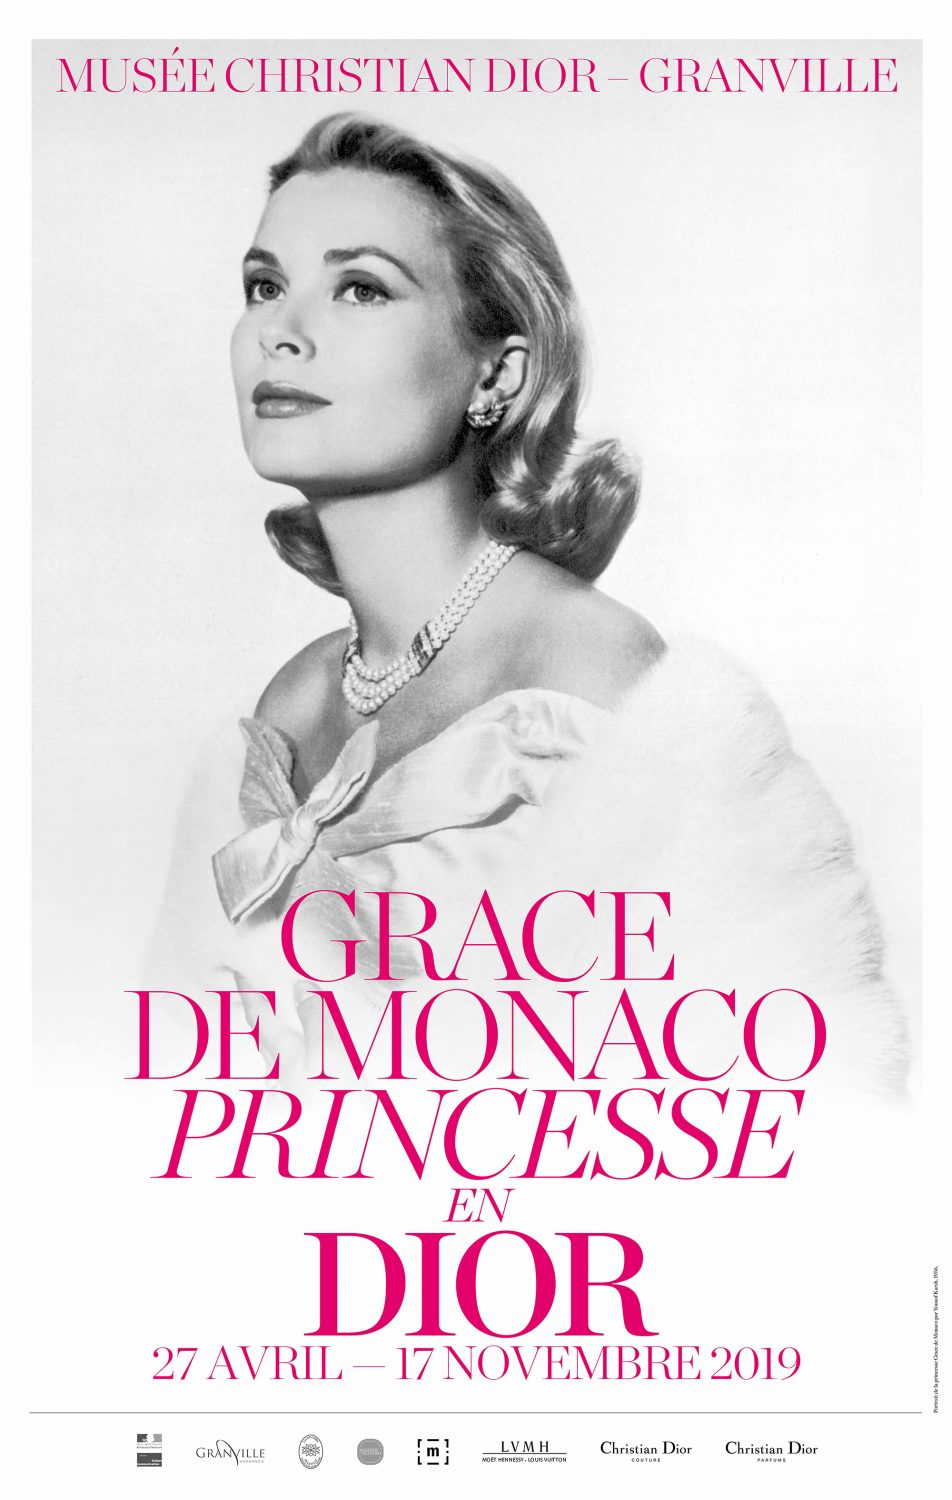 Grace Kelly honored at Christian Dior museum in Normandy, France